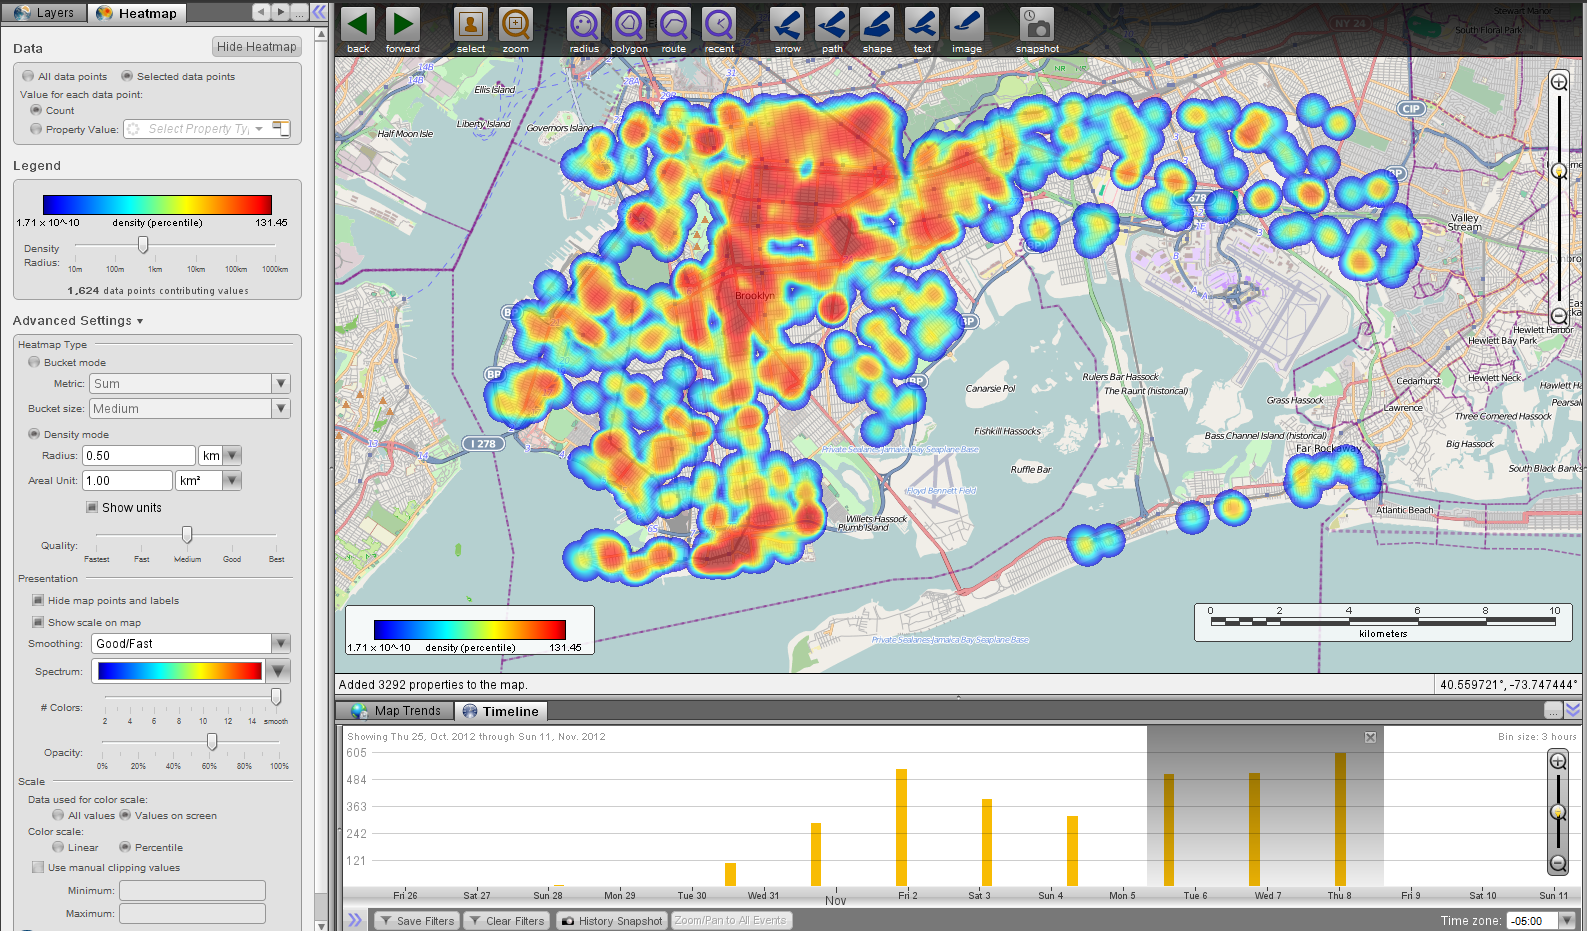 Brooklyn_HeatReports_Heatmap_11_9